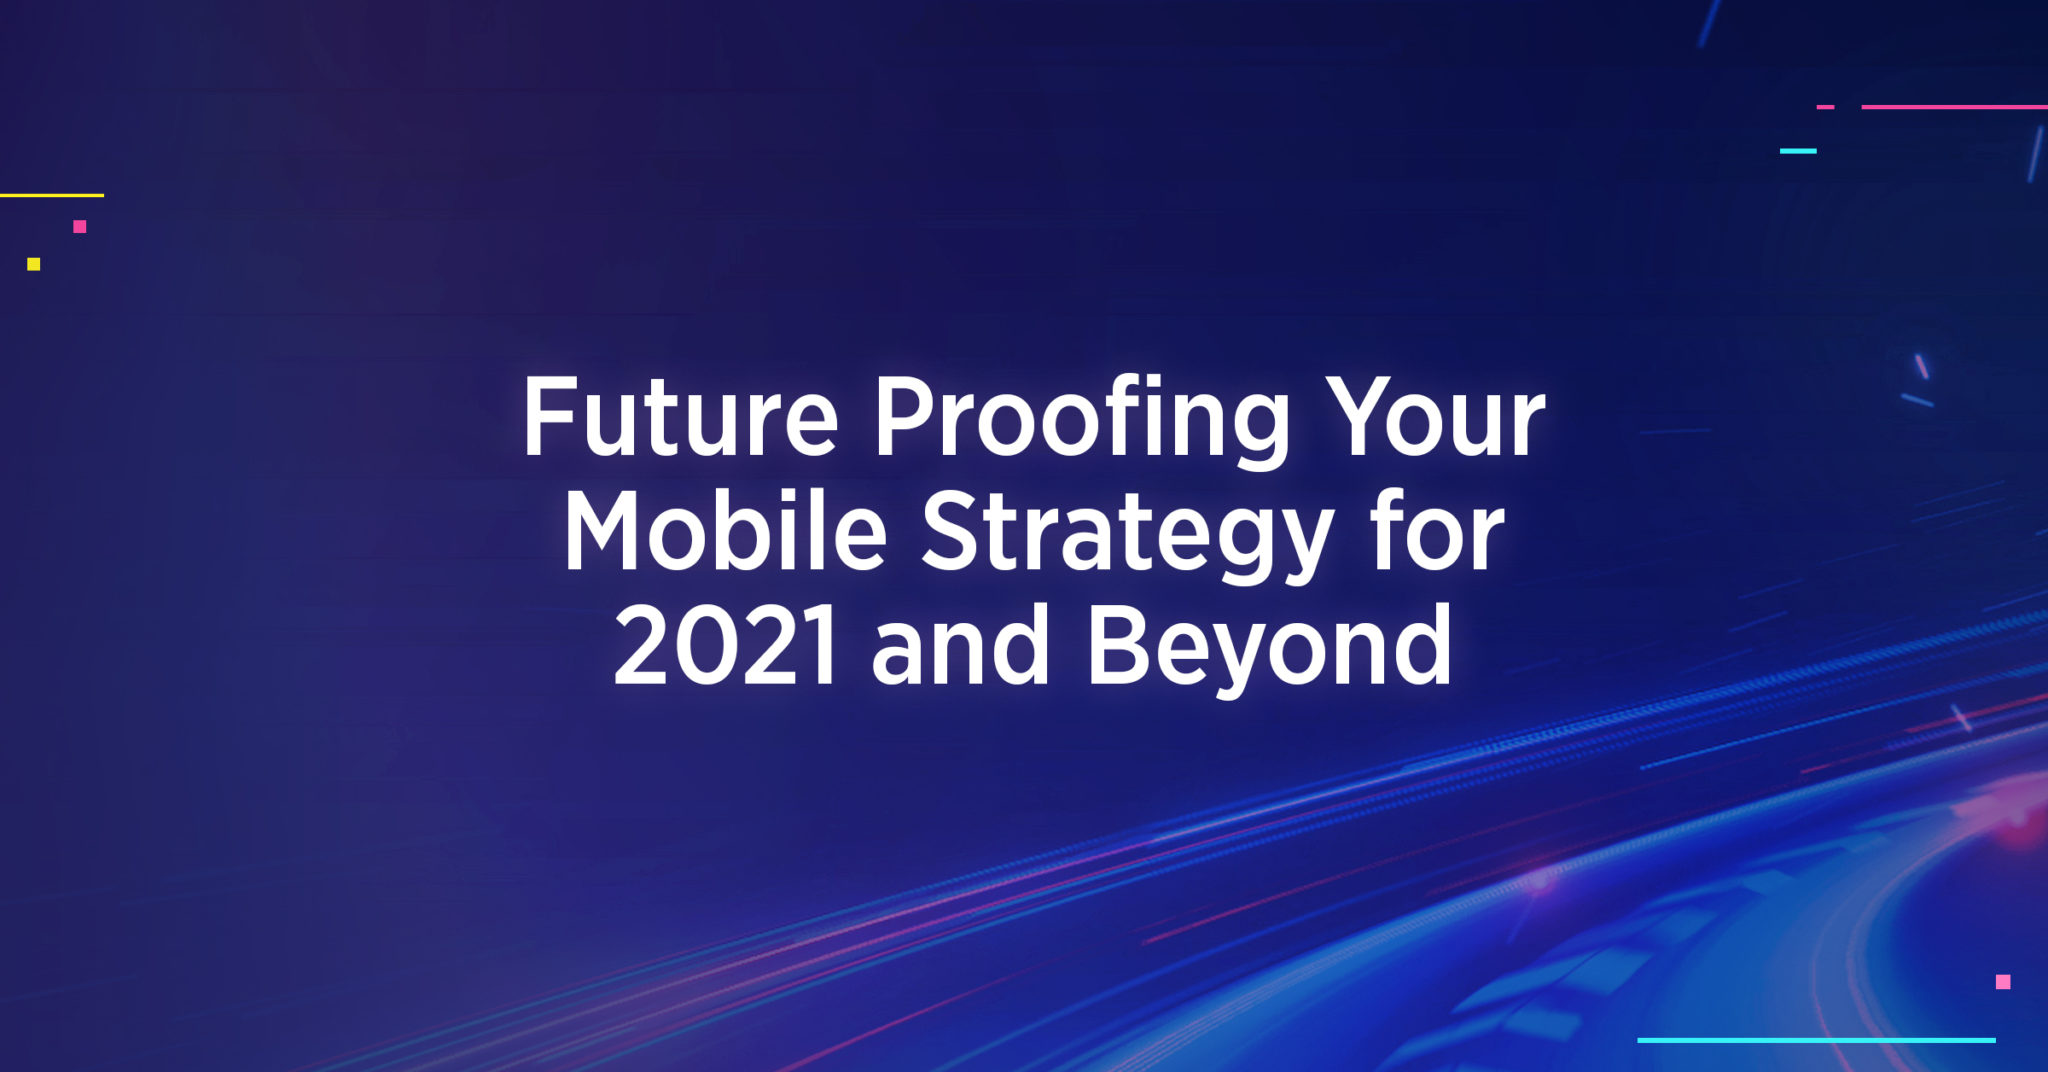 Future-Proofing Your Mobile Strategies for 2021 and Beyond